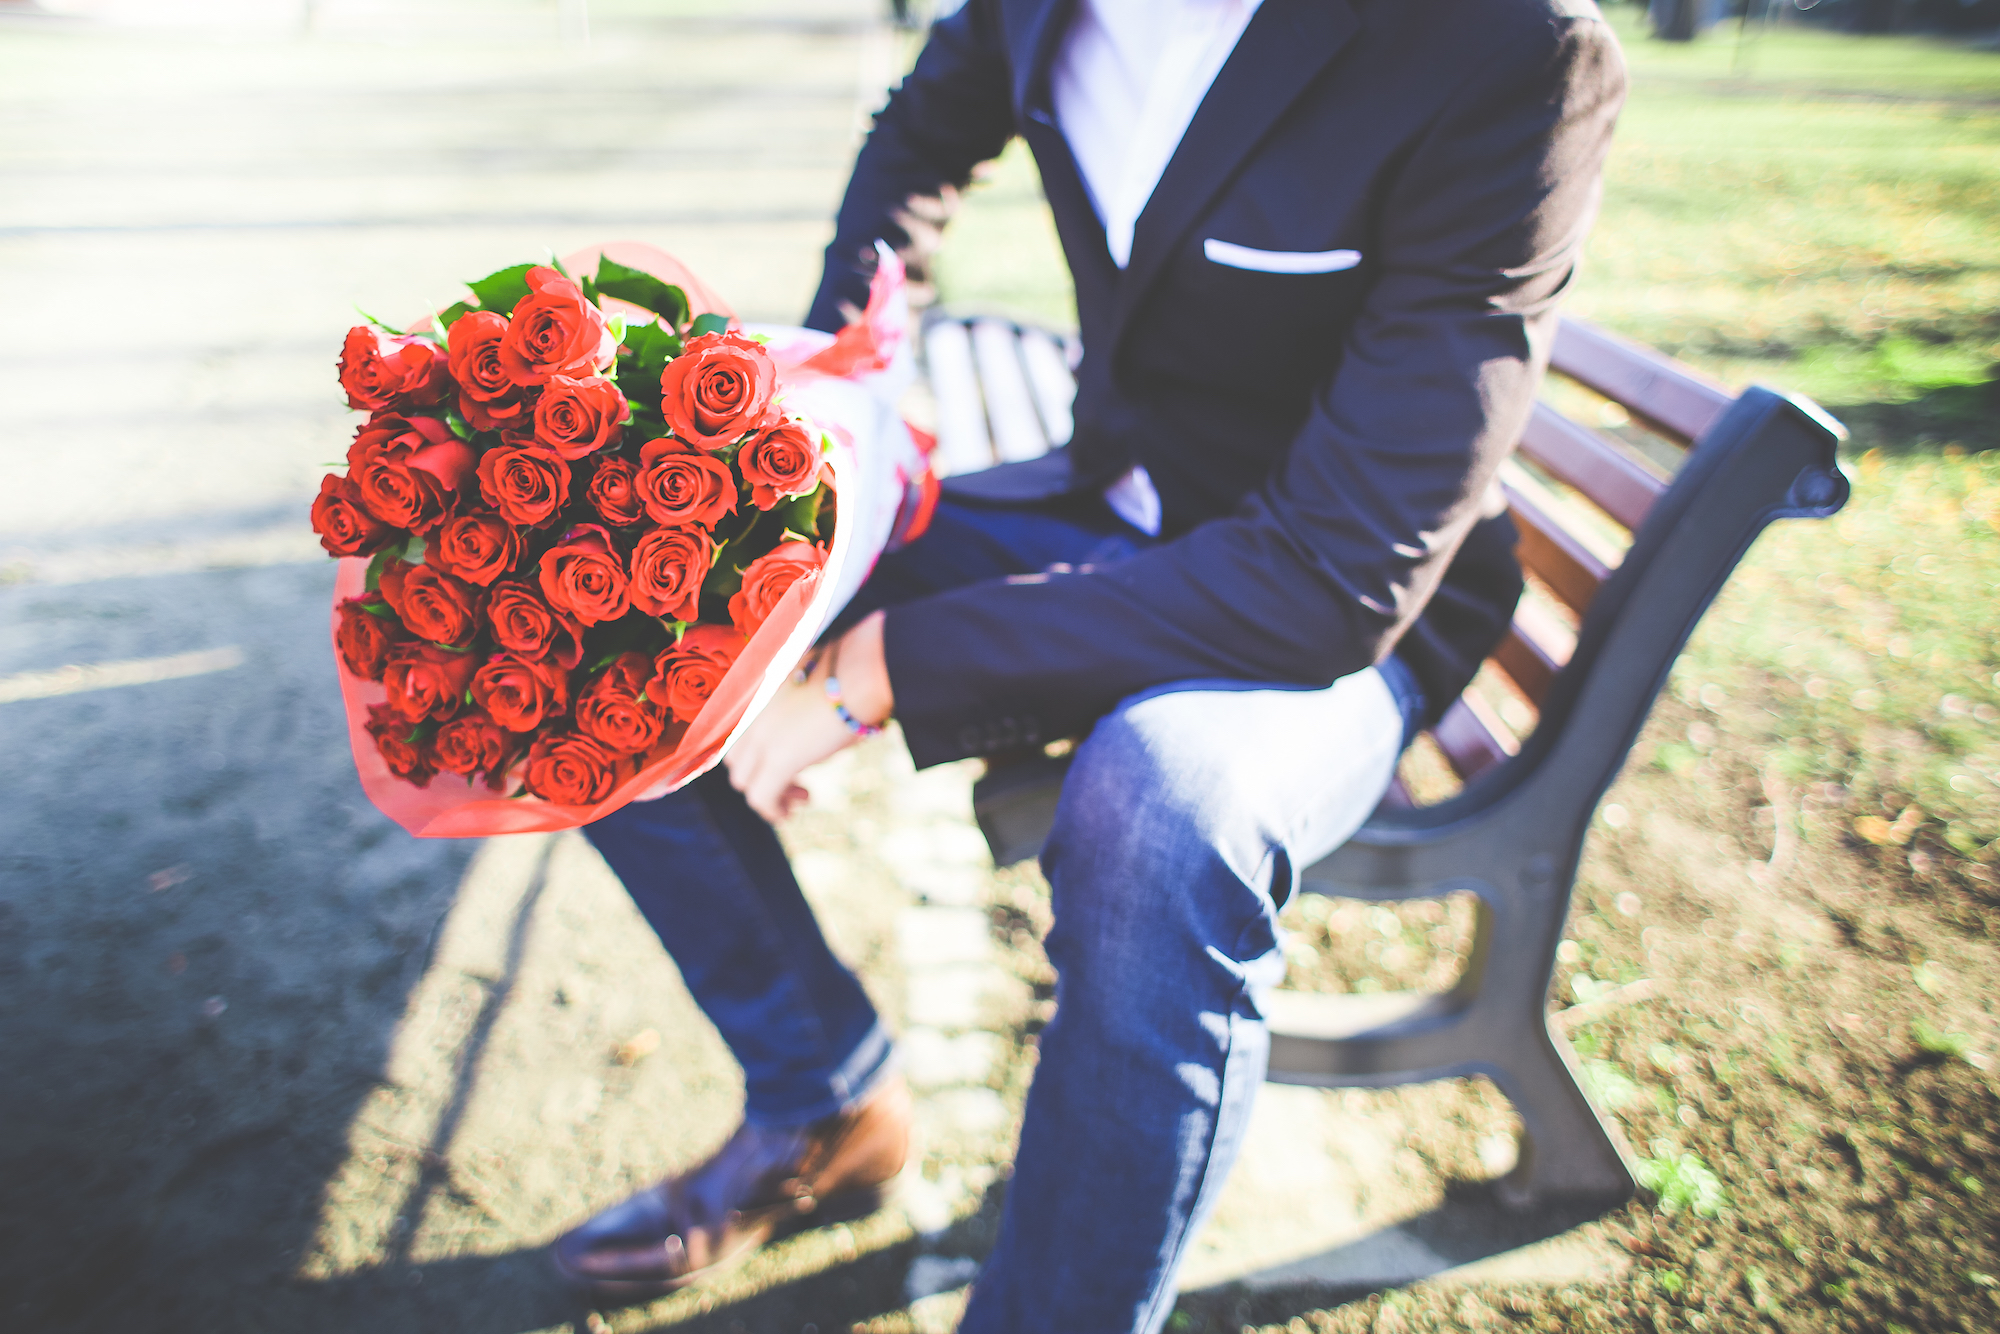 picjumbo.com_HNCK4278 - man with roses - small